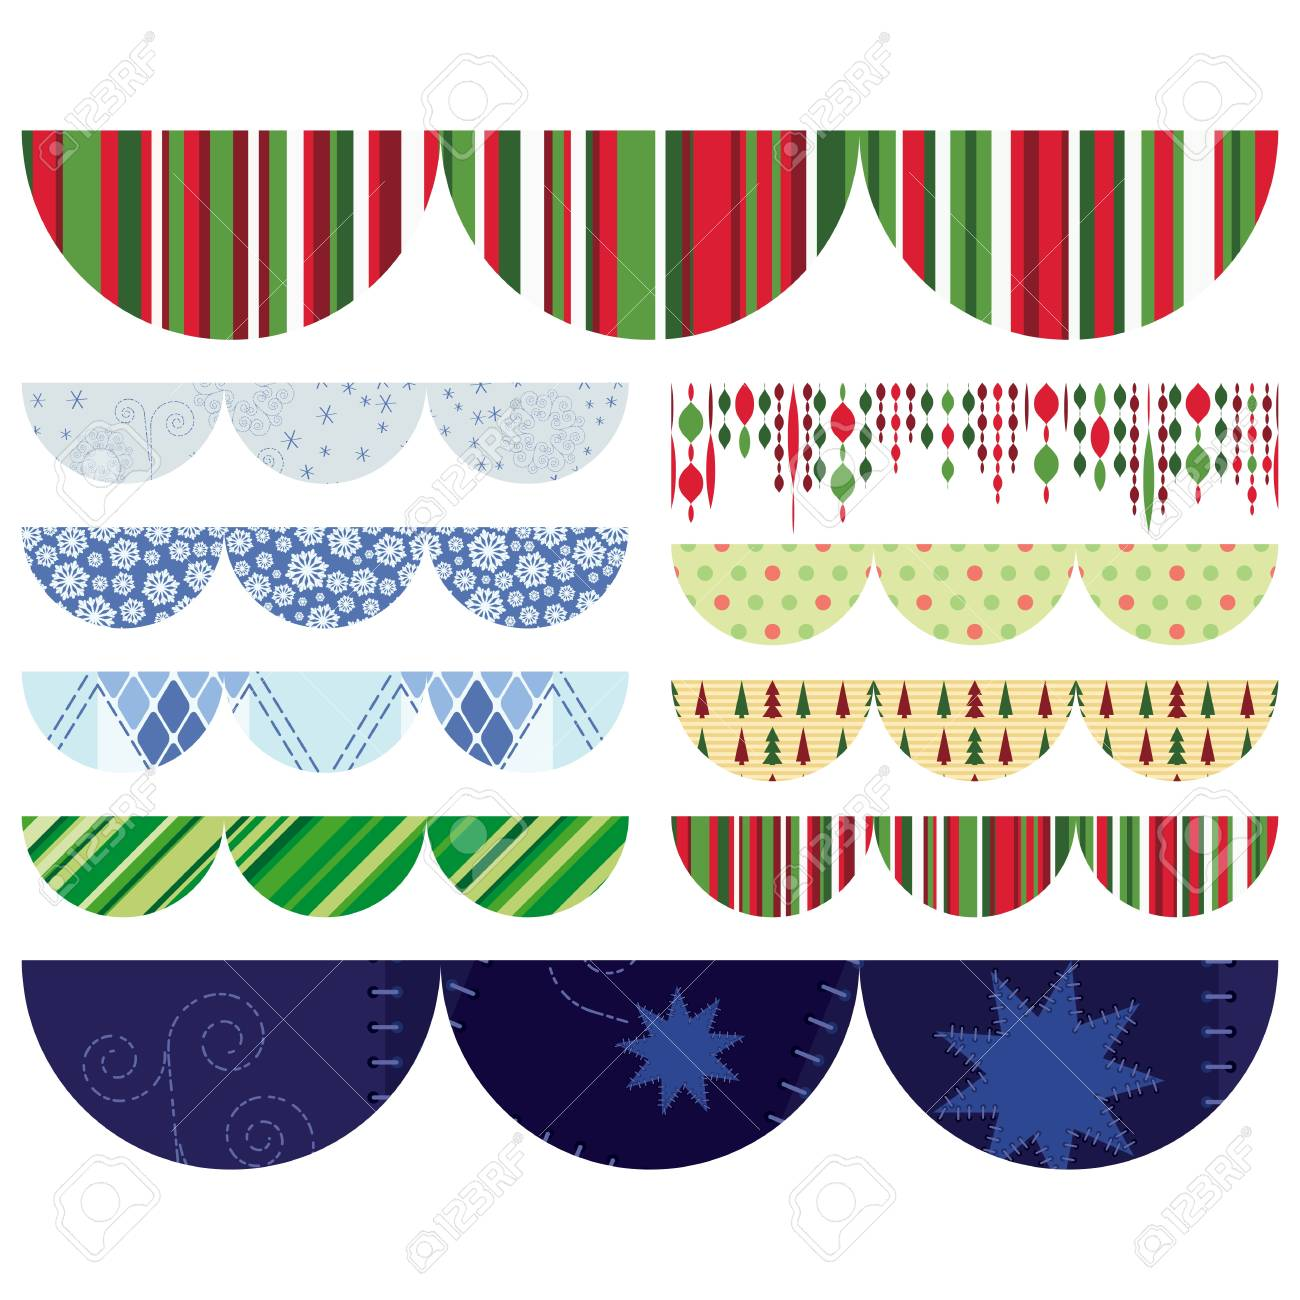 Set of Christmas design elements Stock Photo - 11310710